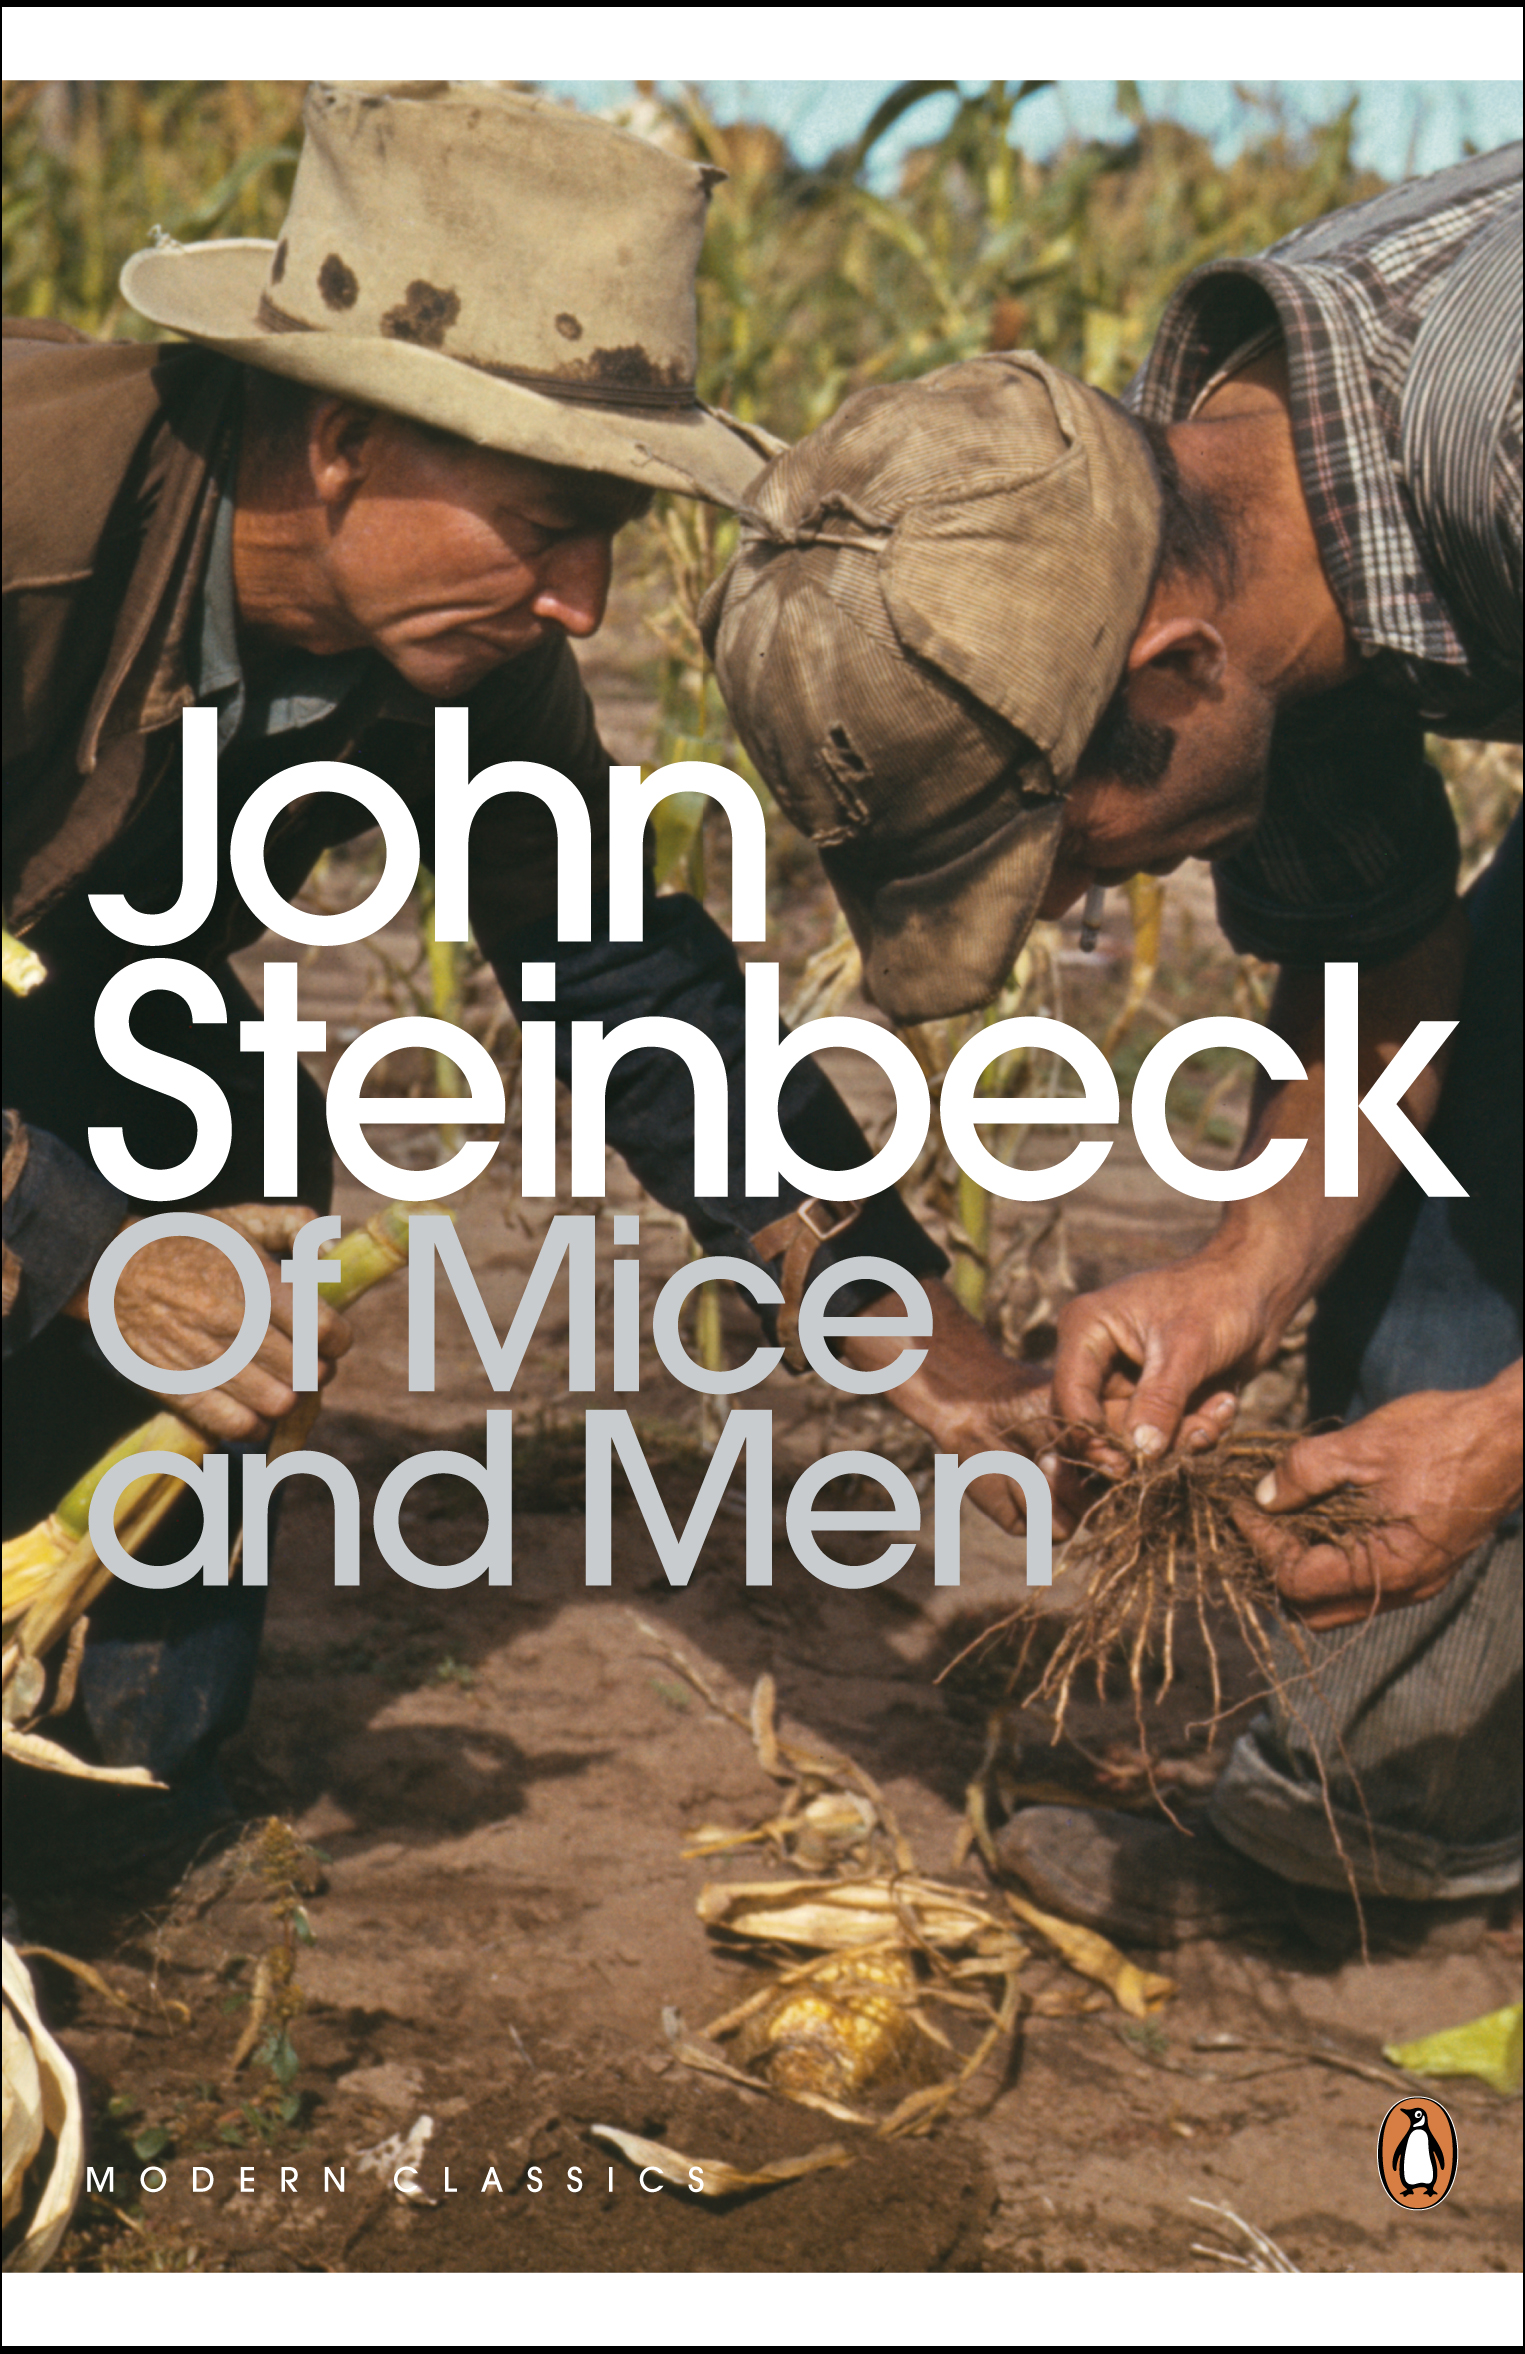 a psychological character analysis of lennie small of of mice and men by john steinbeck Here's a list of of mice and men essay topics  of mice and men, by john steinbeck  principal characters lennie small.